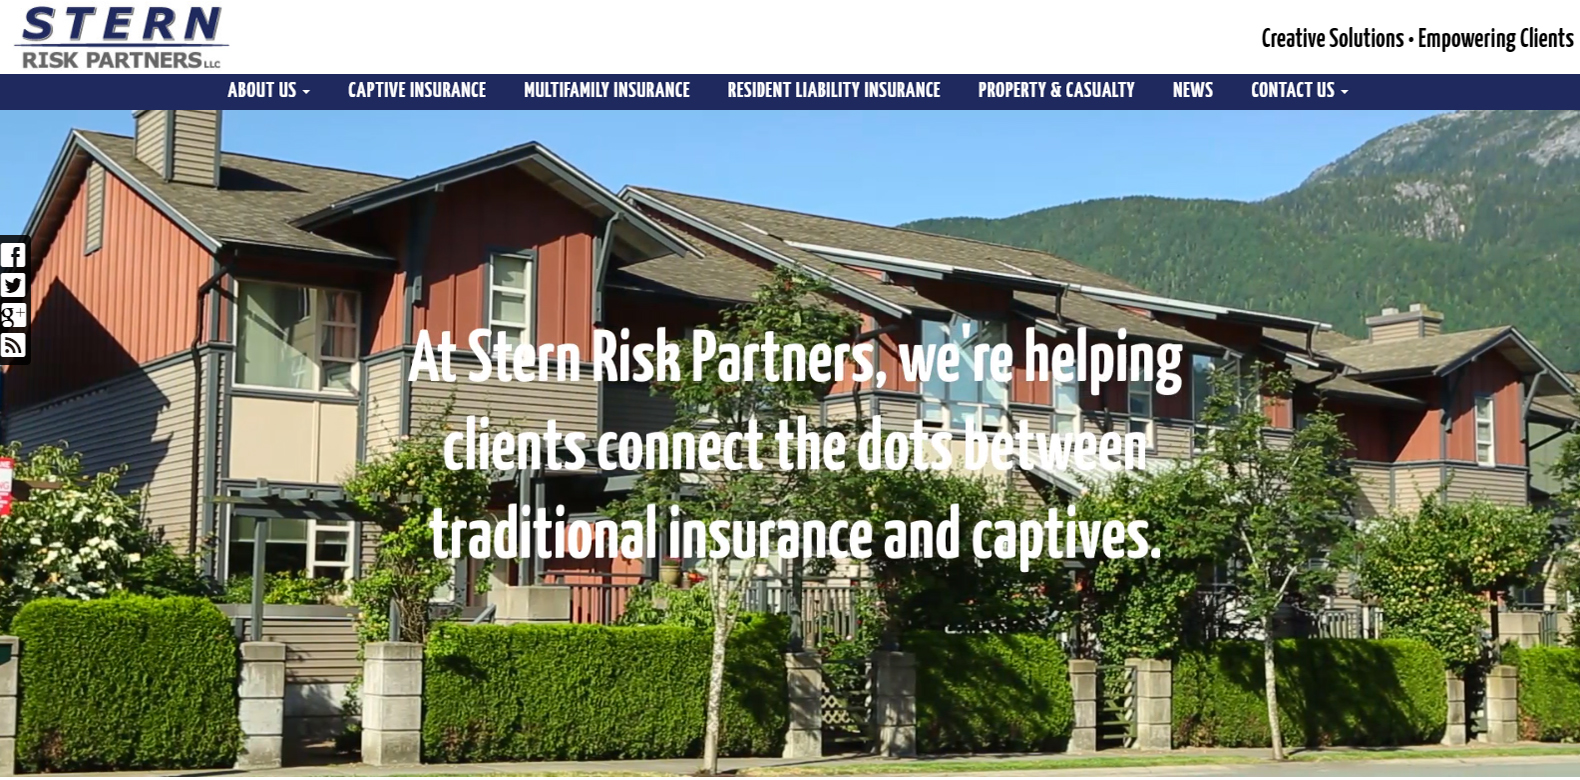 New Website Launch: Stern Risk Partners